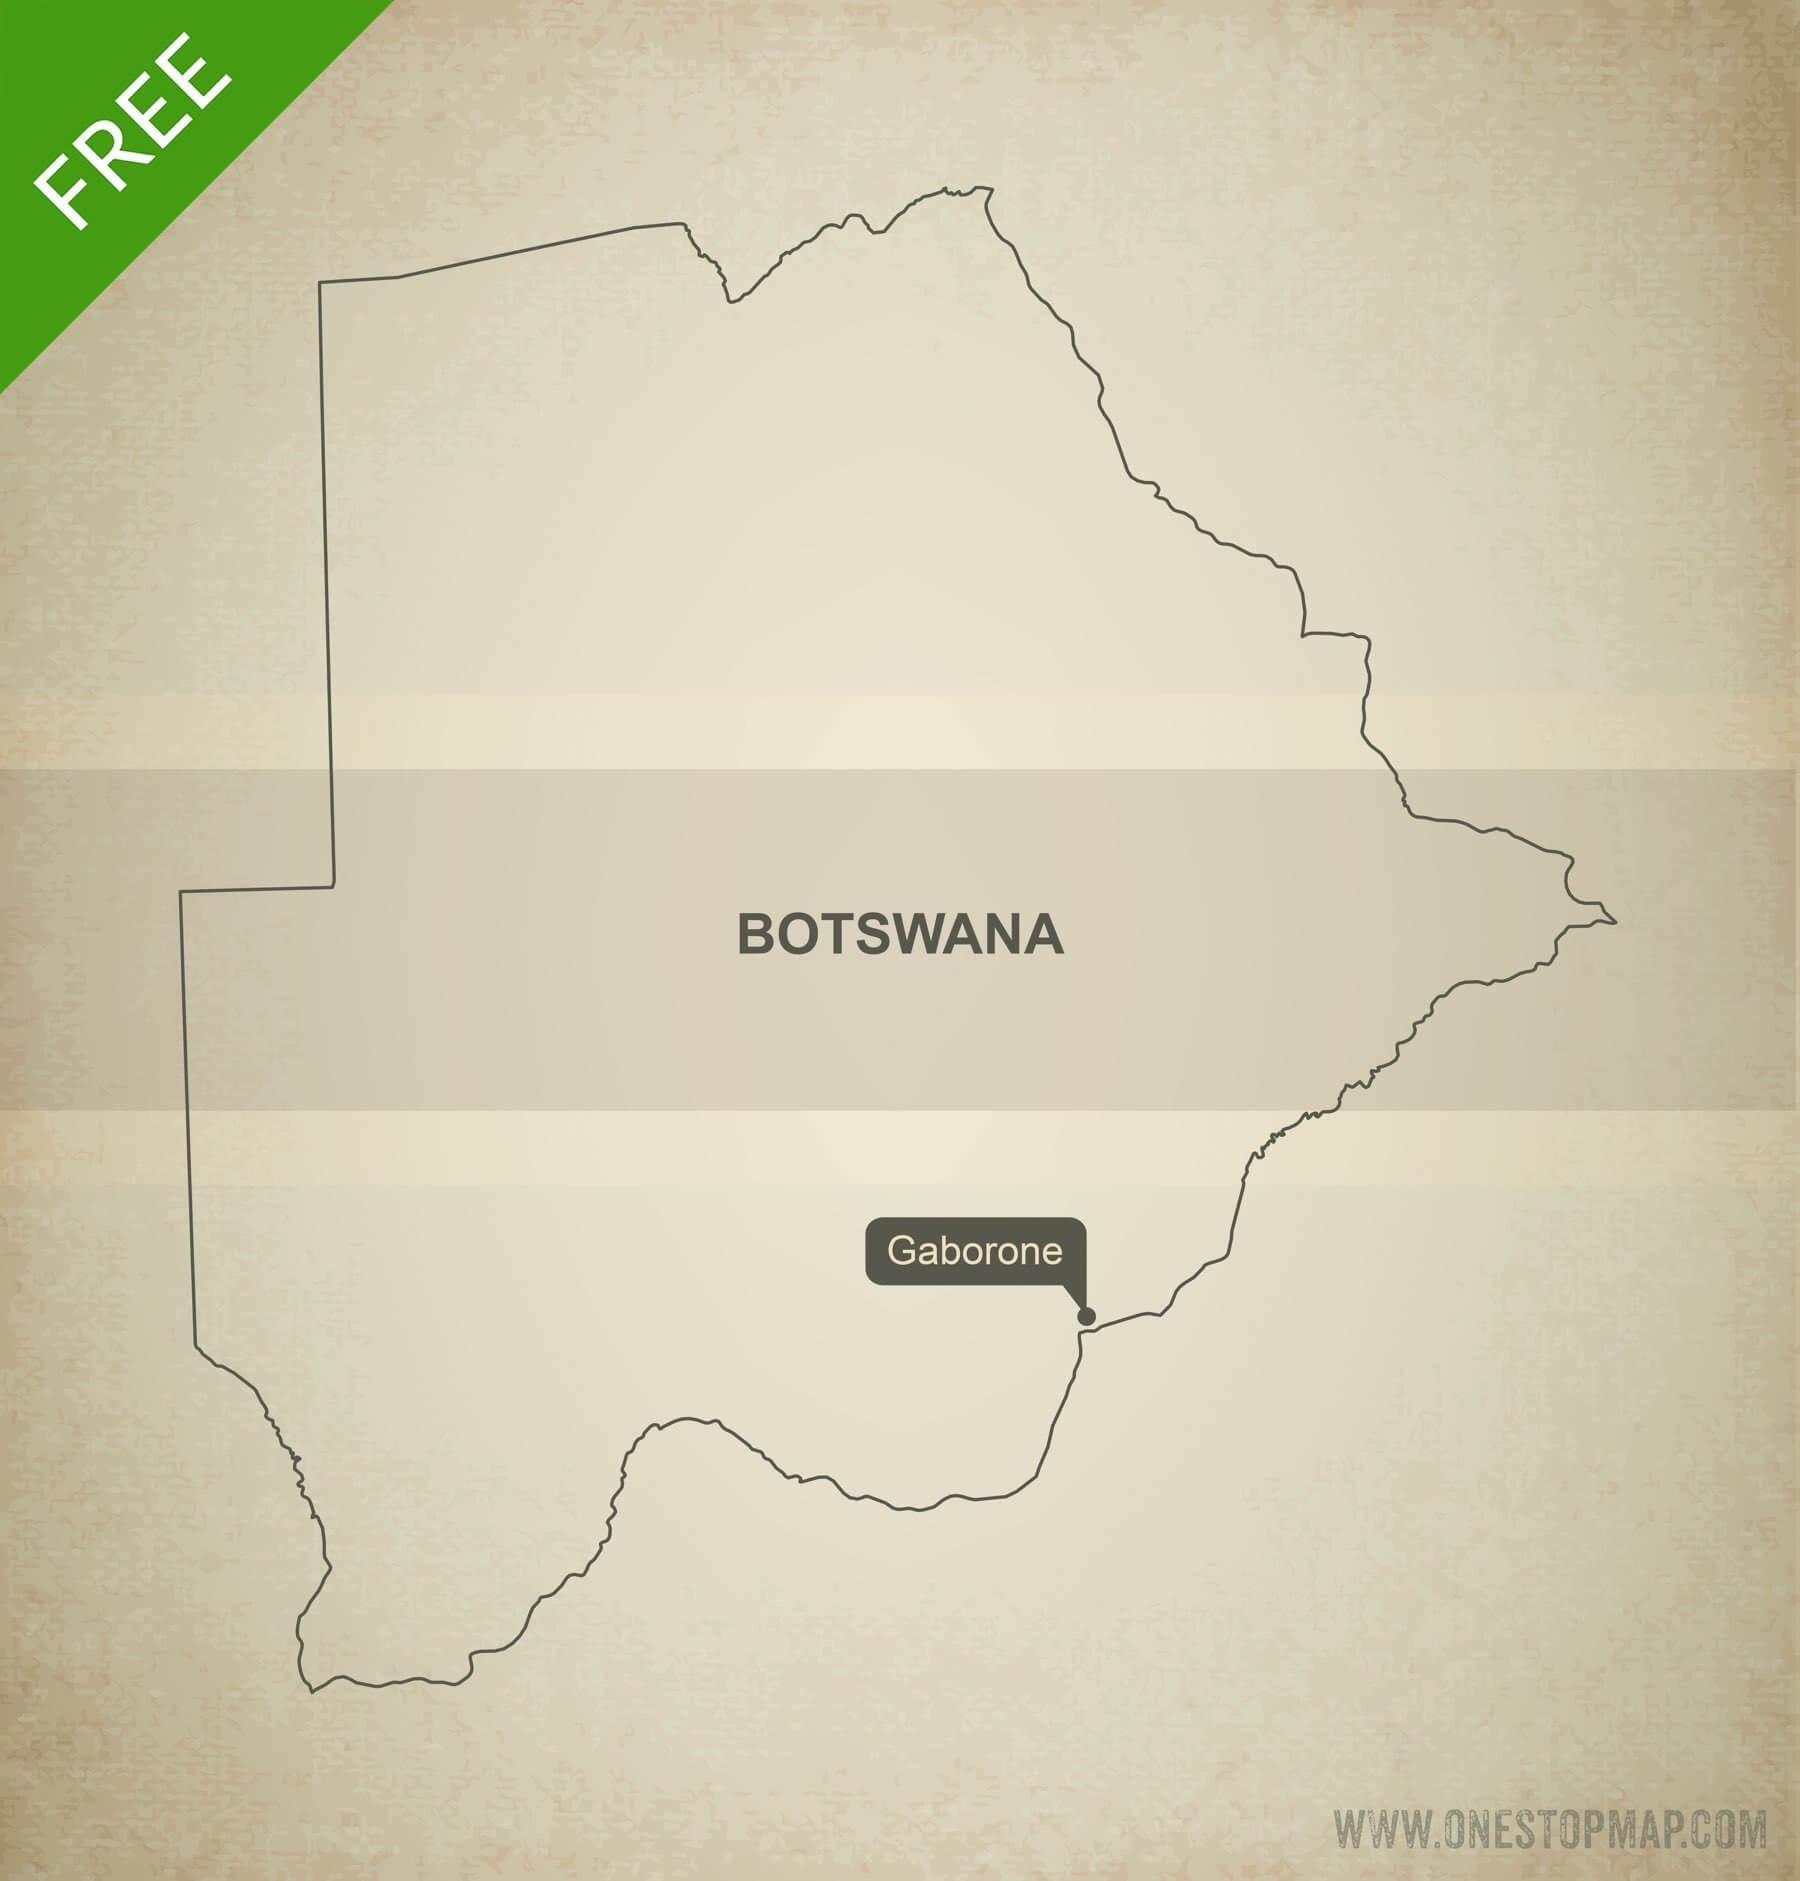 Free vector map of Botswana outline